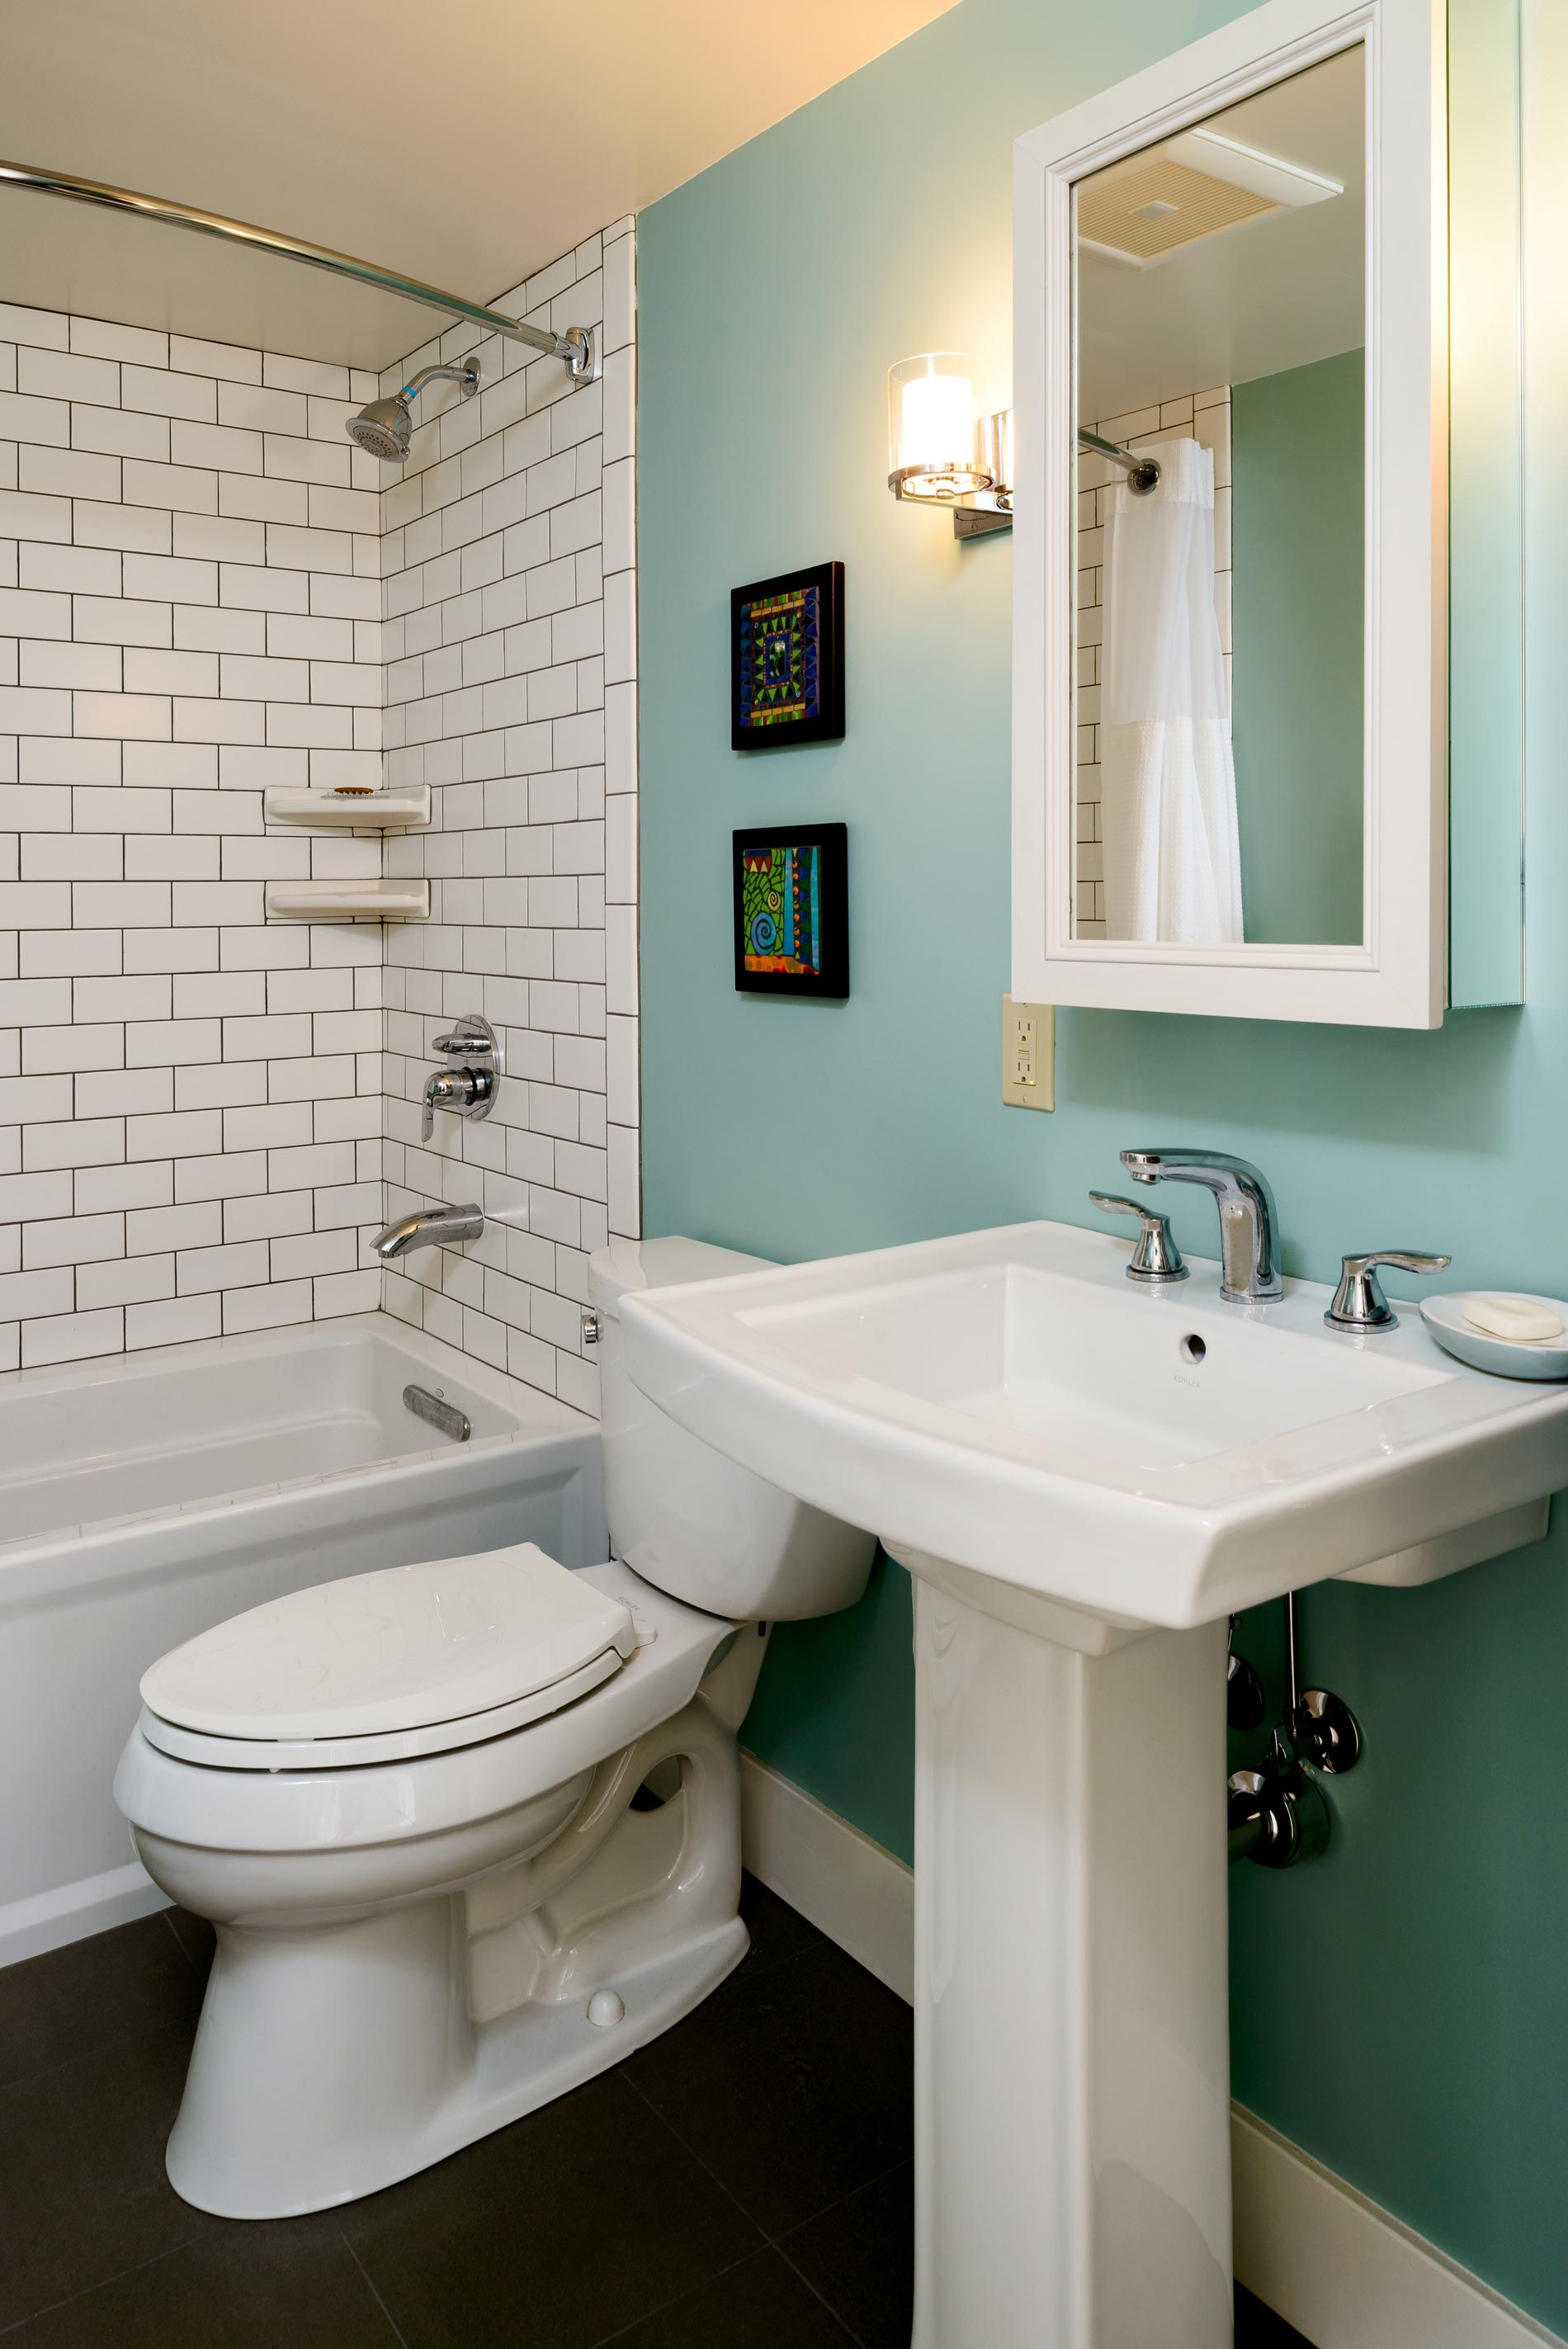 Bathroom remodel retro bathroom modern bathroom for Bathroom wall remodel ideas